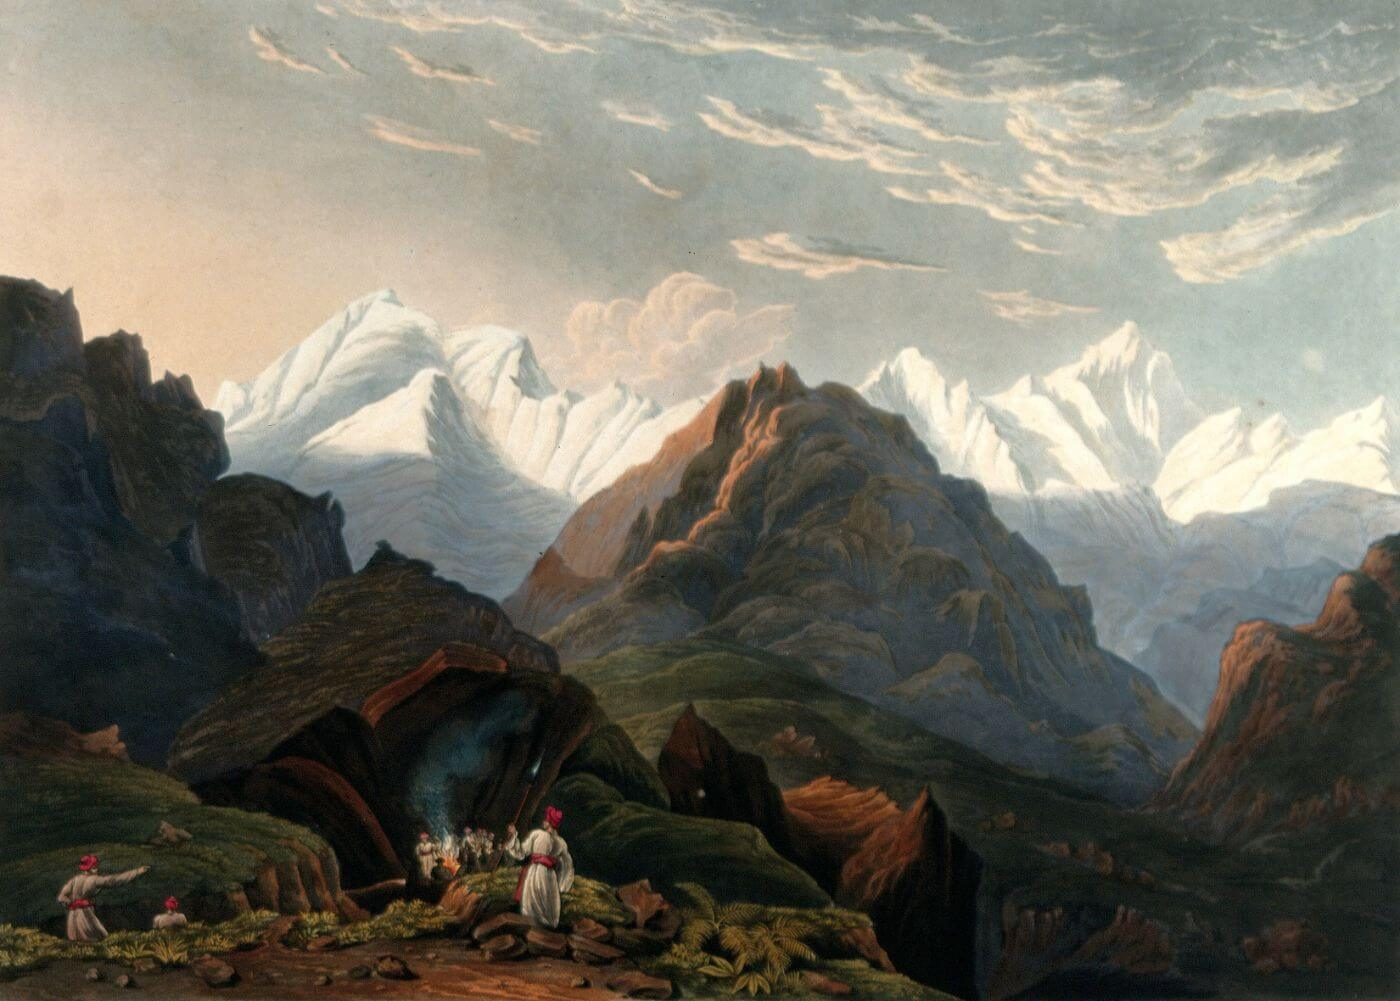 View of the mountains - James Baillie Fraser c 1826 Vintage Orientalist Aquatint Painting of India